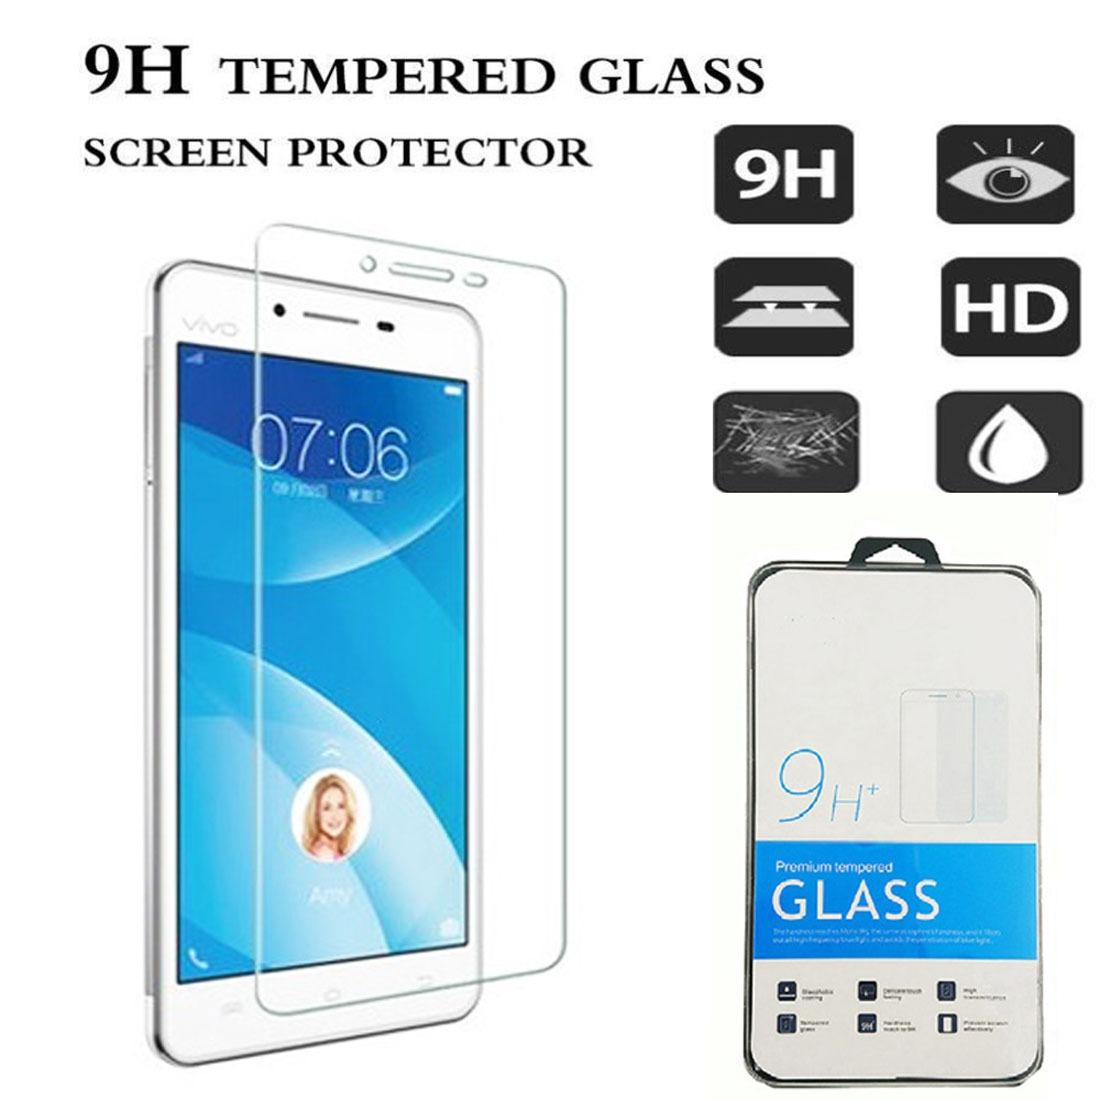 ... Tempered Glass 9H Screen Protector 0.32mm + Gratis Free Handsfree Earphone Headset Universal - Bening TransparanIDR16900. Rp 17.900